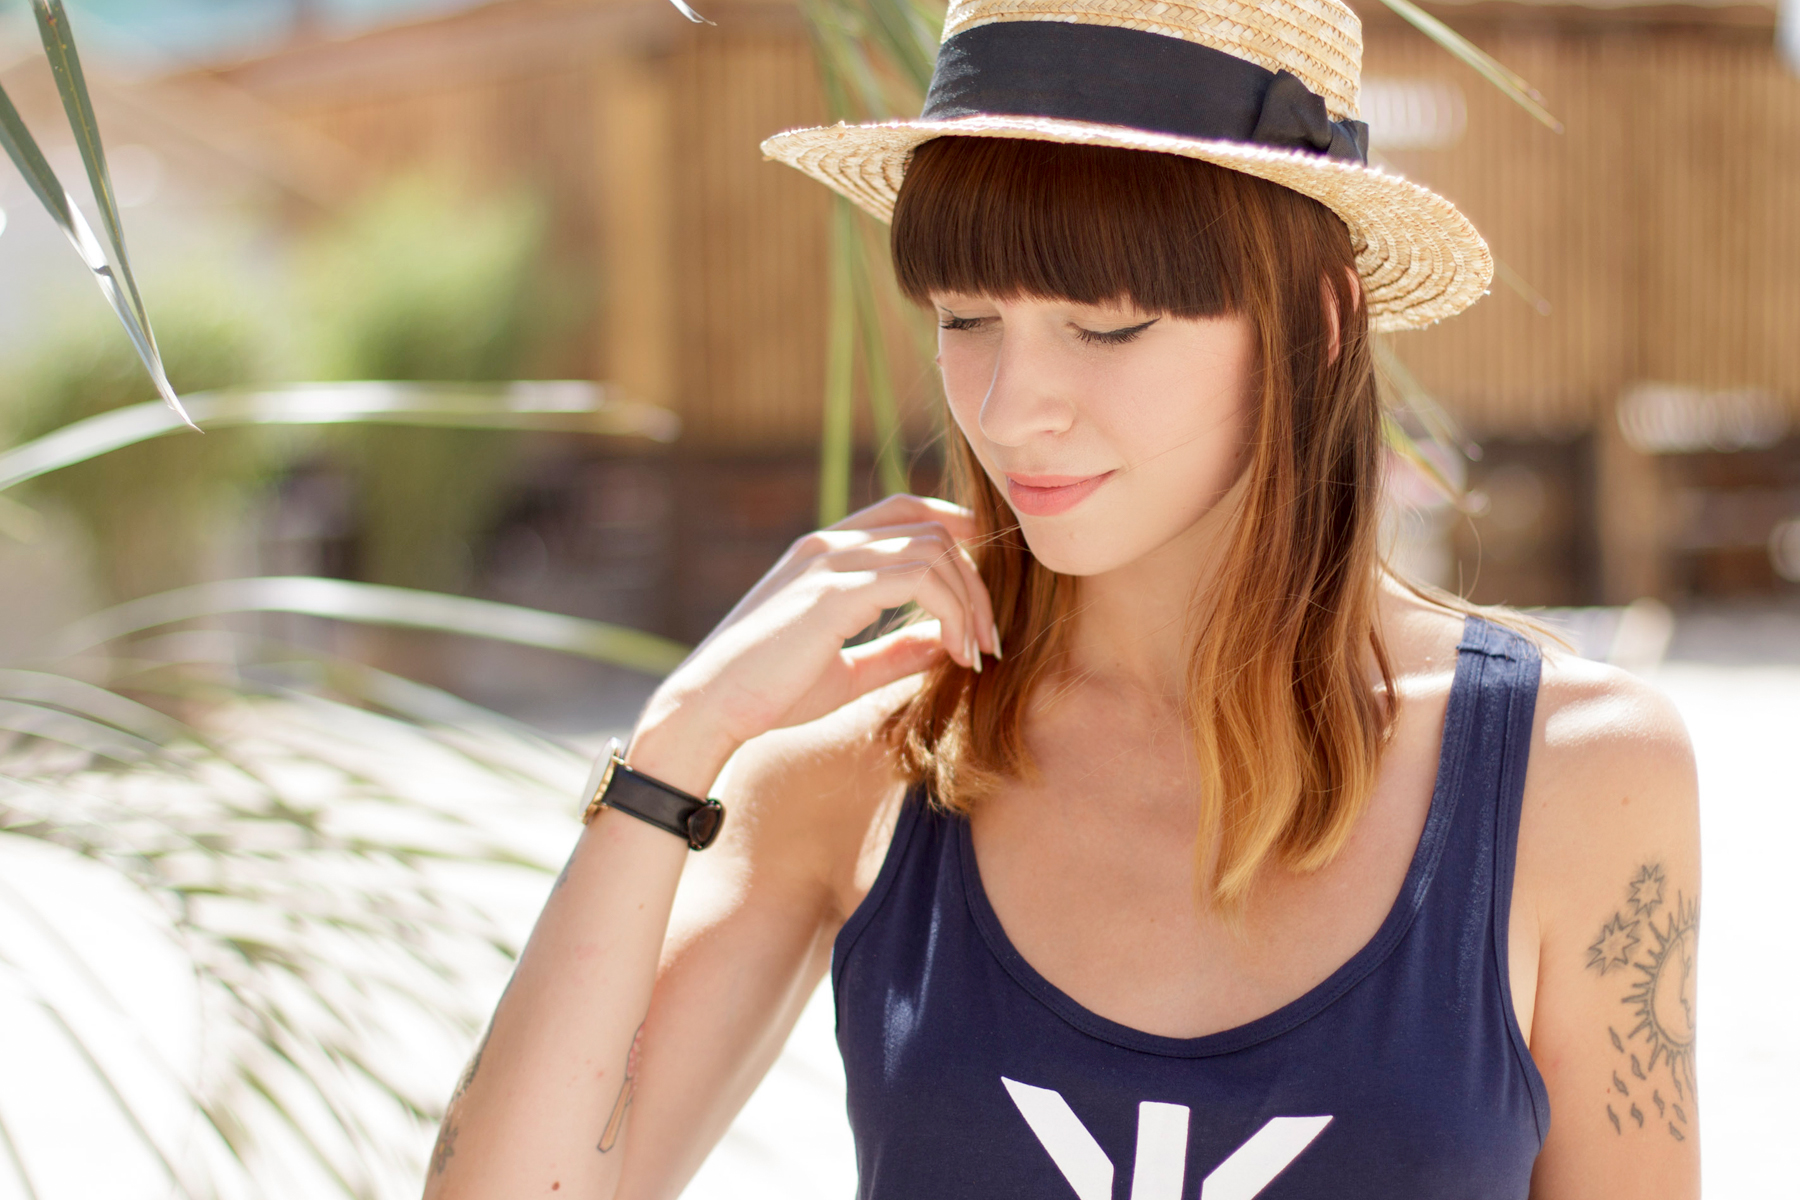 <!--:en-->Summer Party with OnePiece<!--:--><!--:de-->Sommerparty mit OnePiece<!--:-->